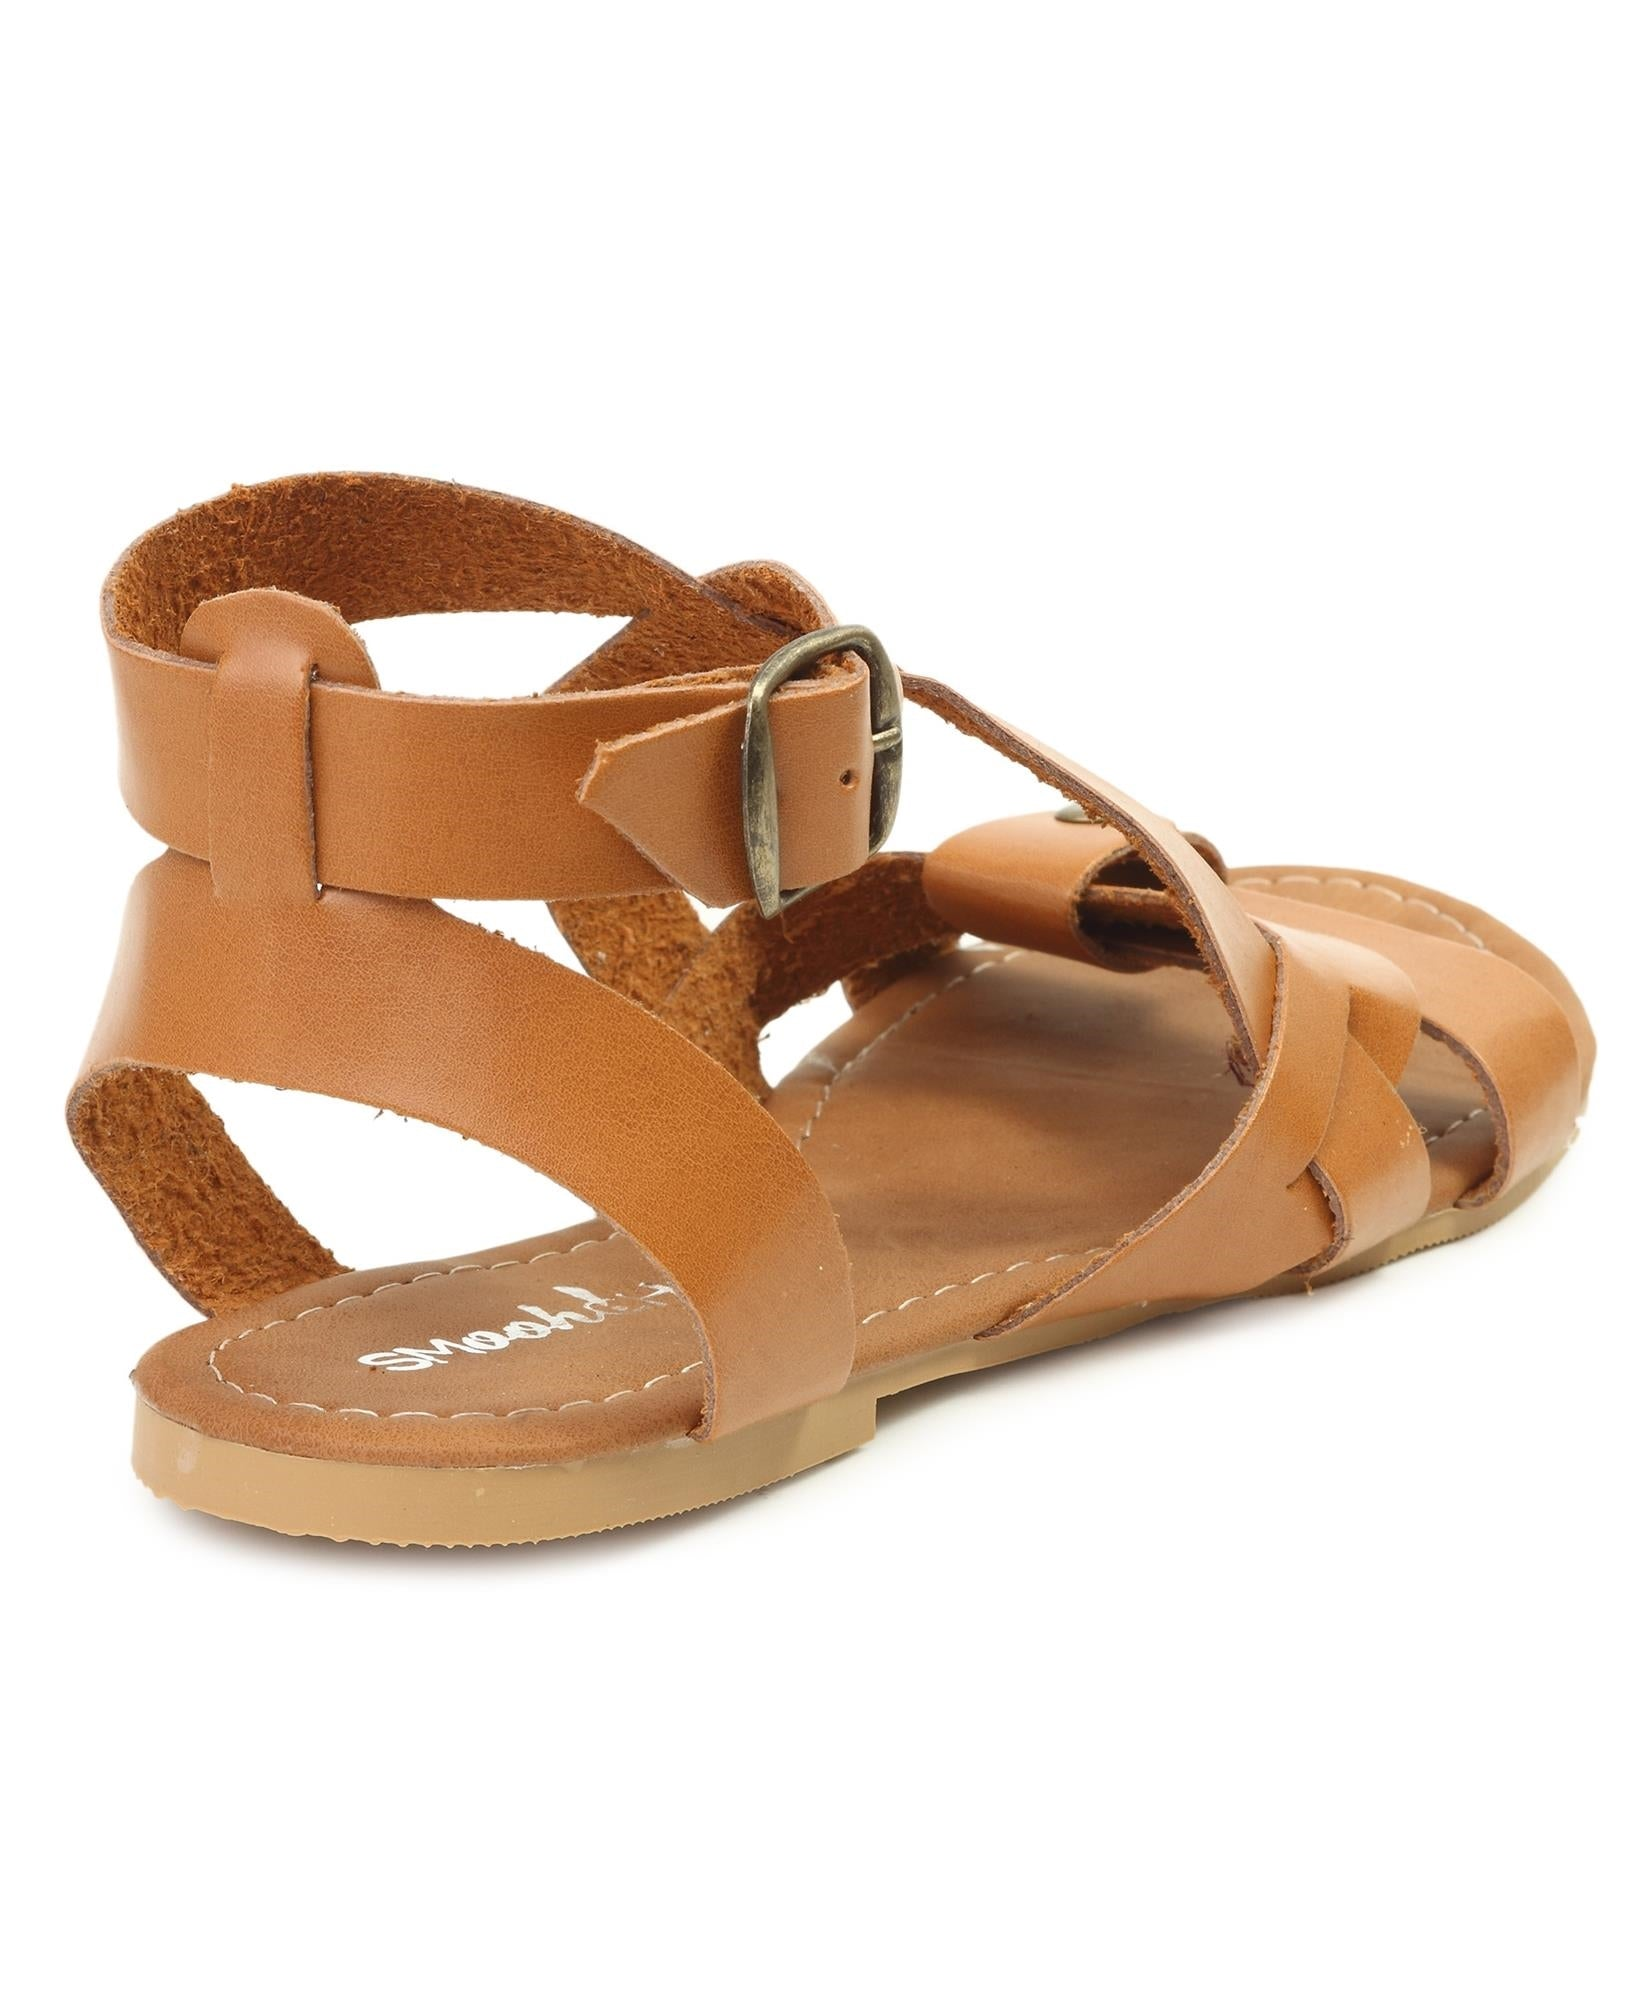 Strappy Sandals - Tan